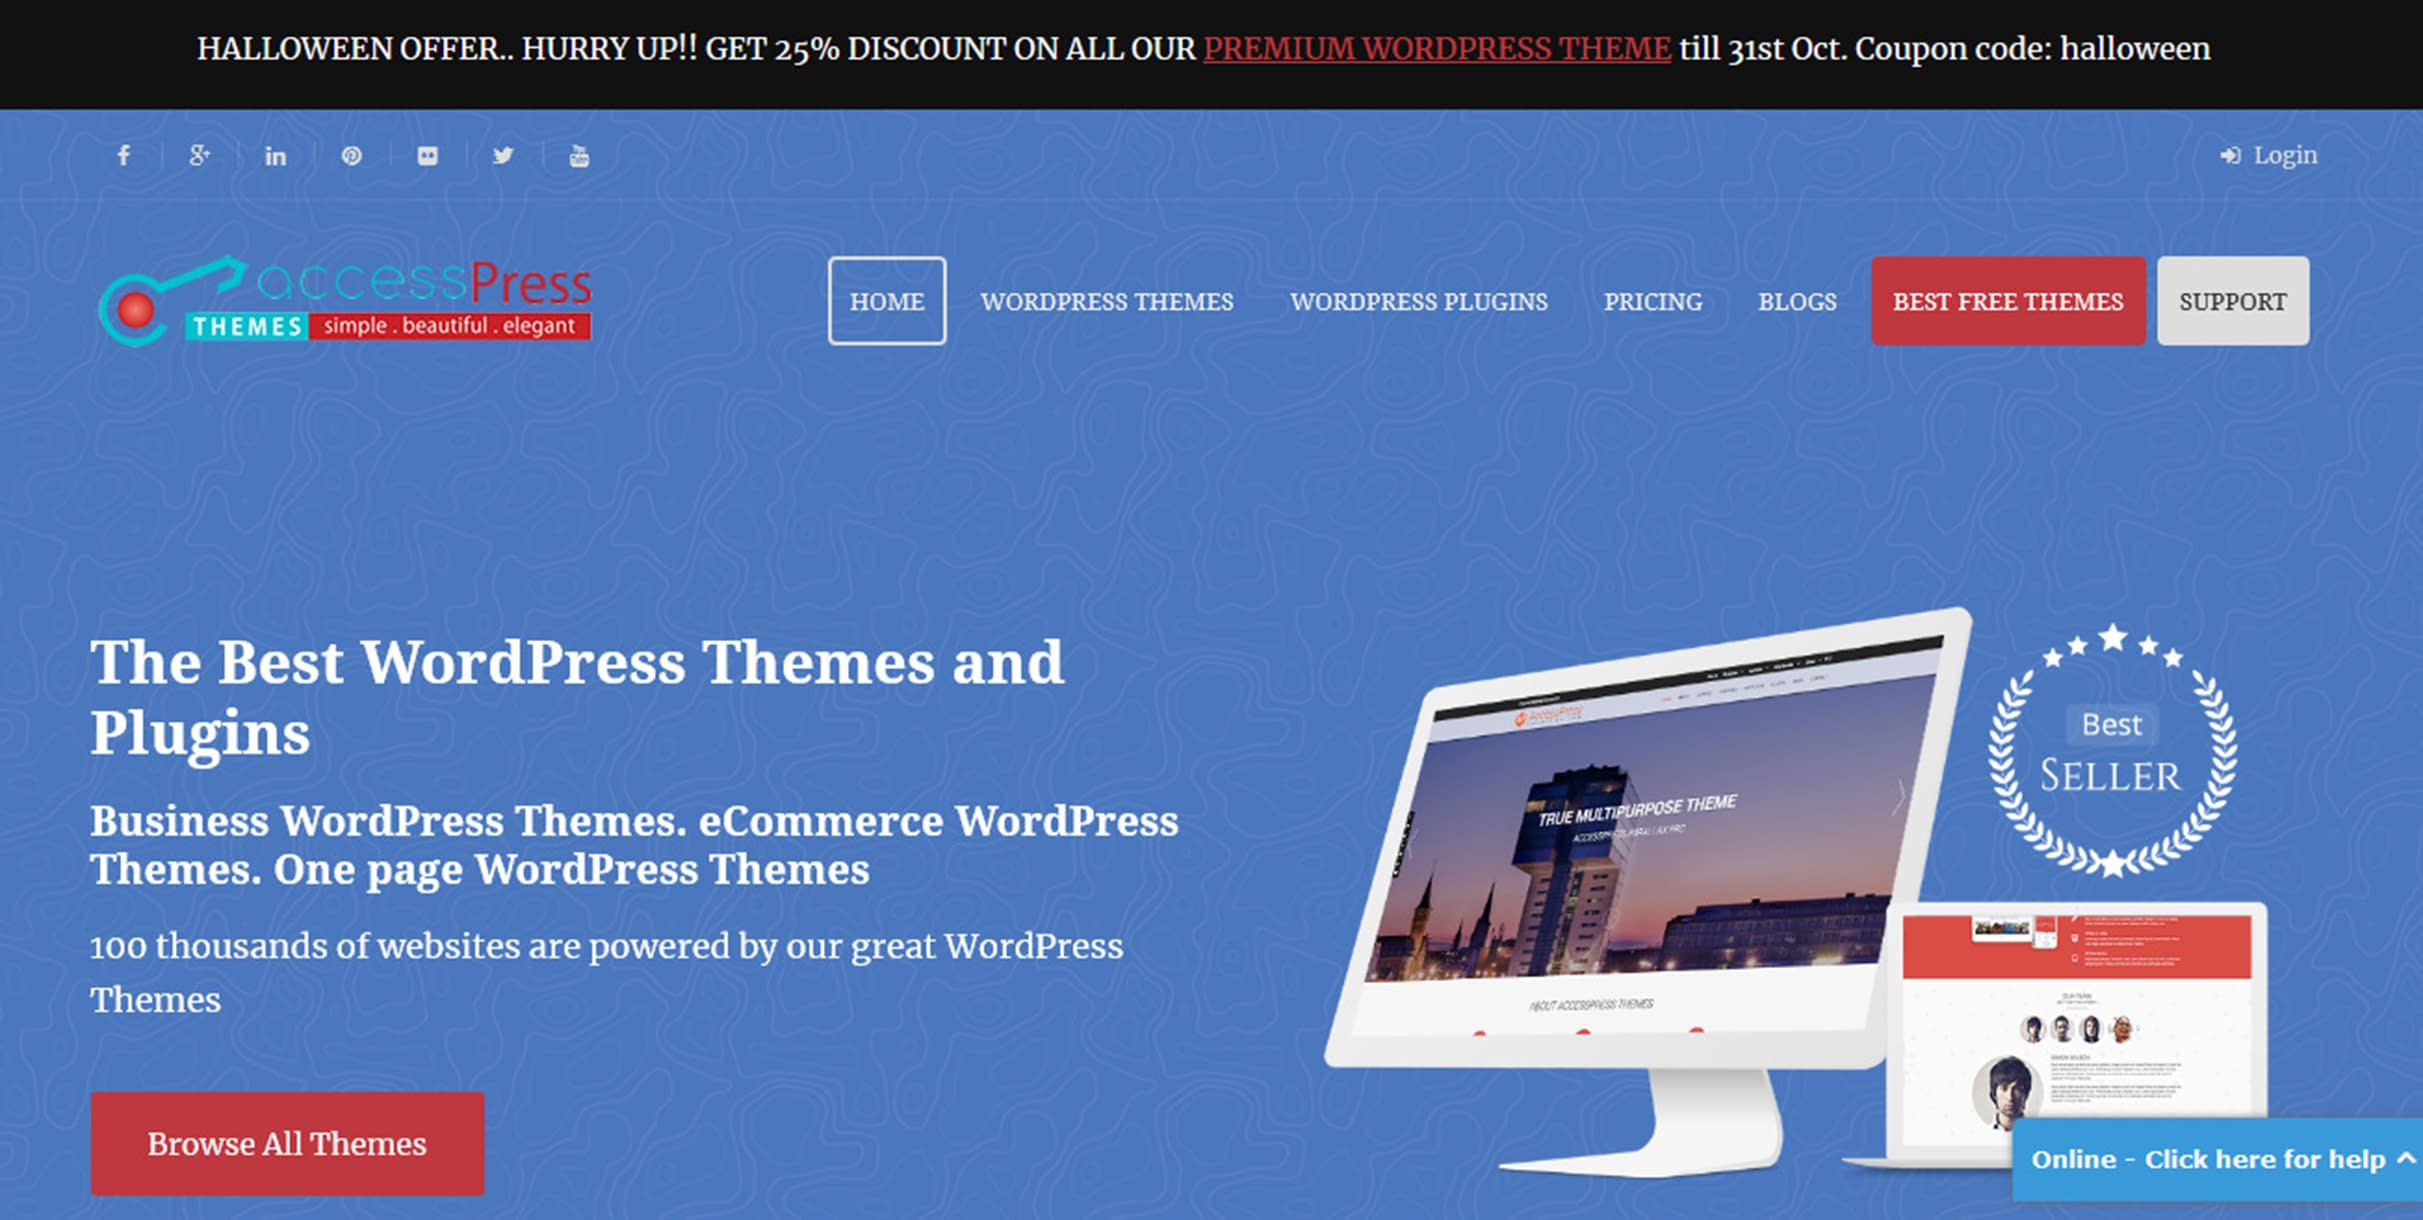 WordPress Deals and Discounts for Halloween 2018 - AccessPress Themes